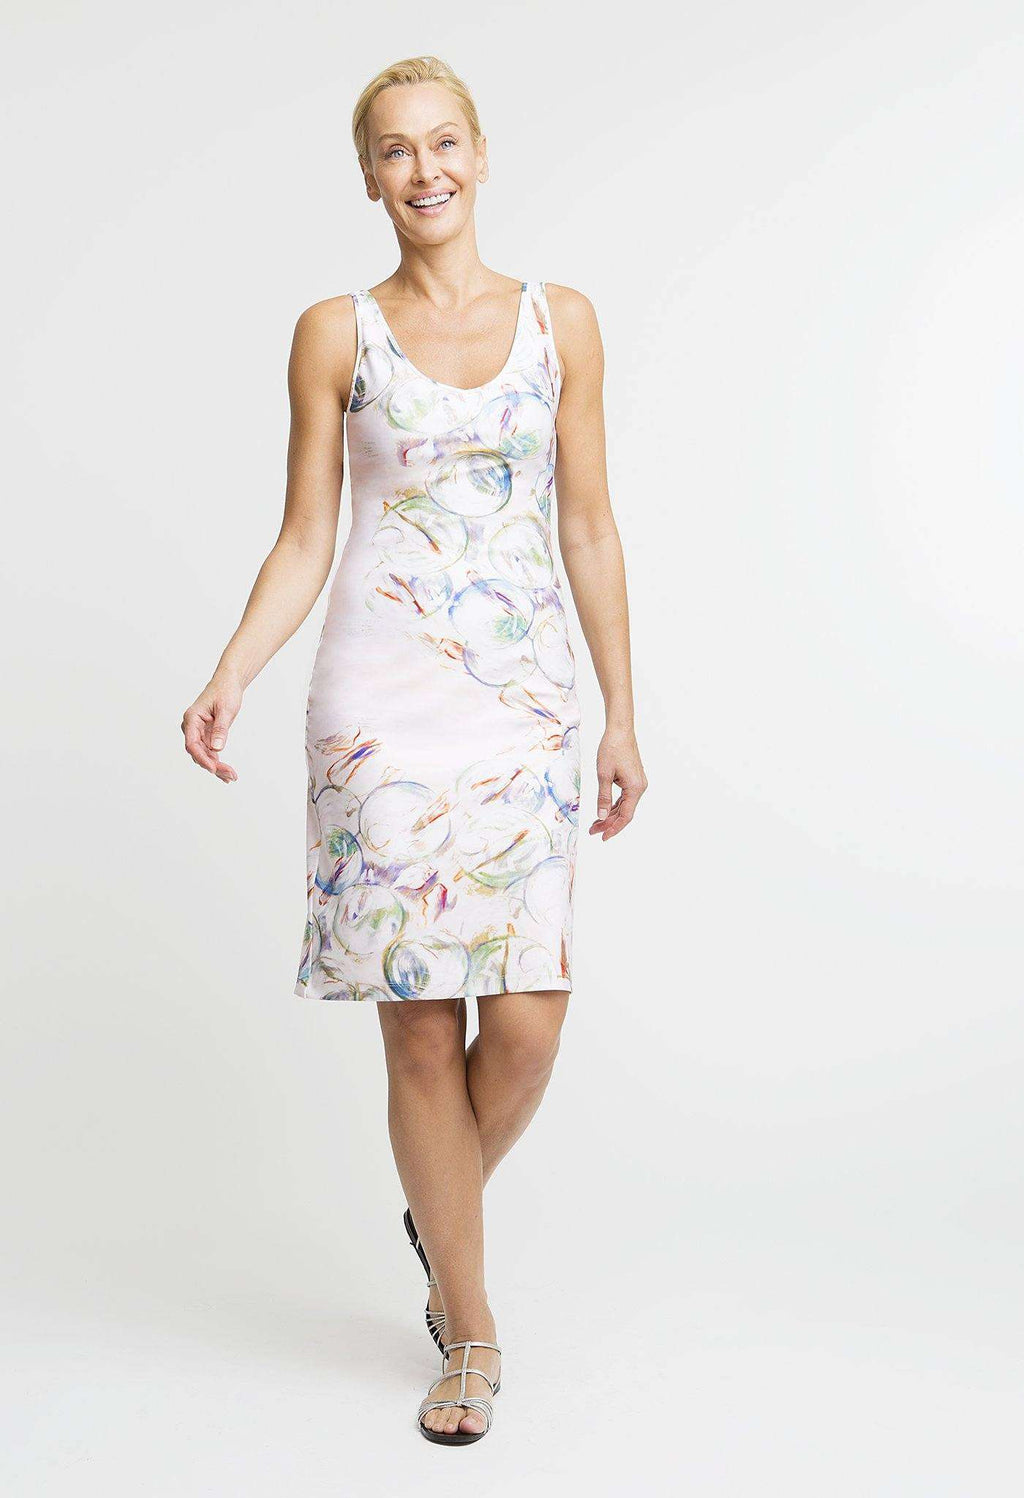 Lavinia Short Dress in Nonsuch front view